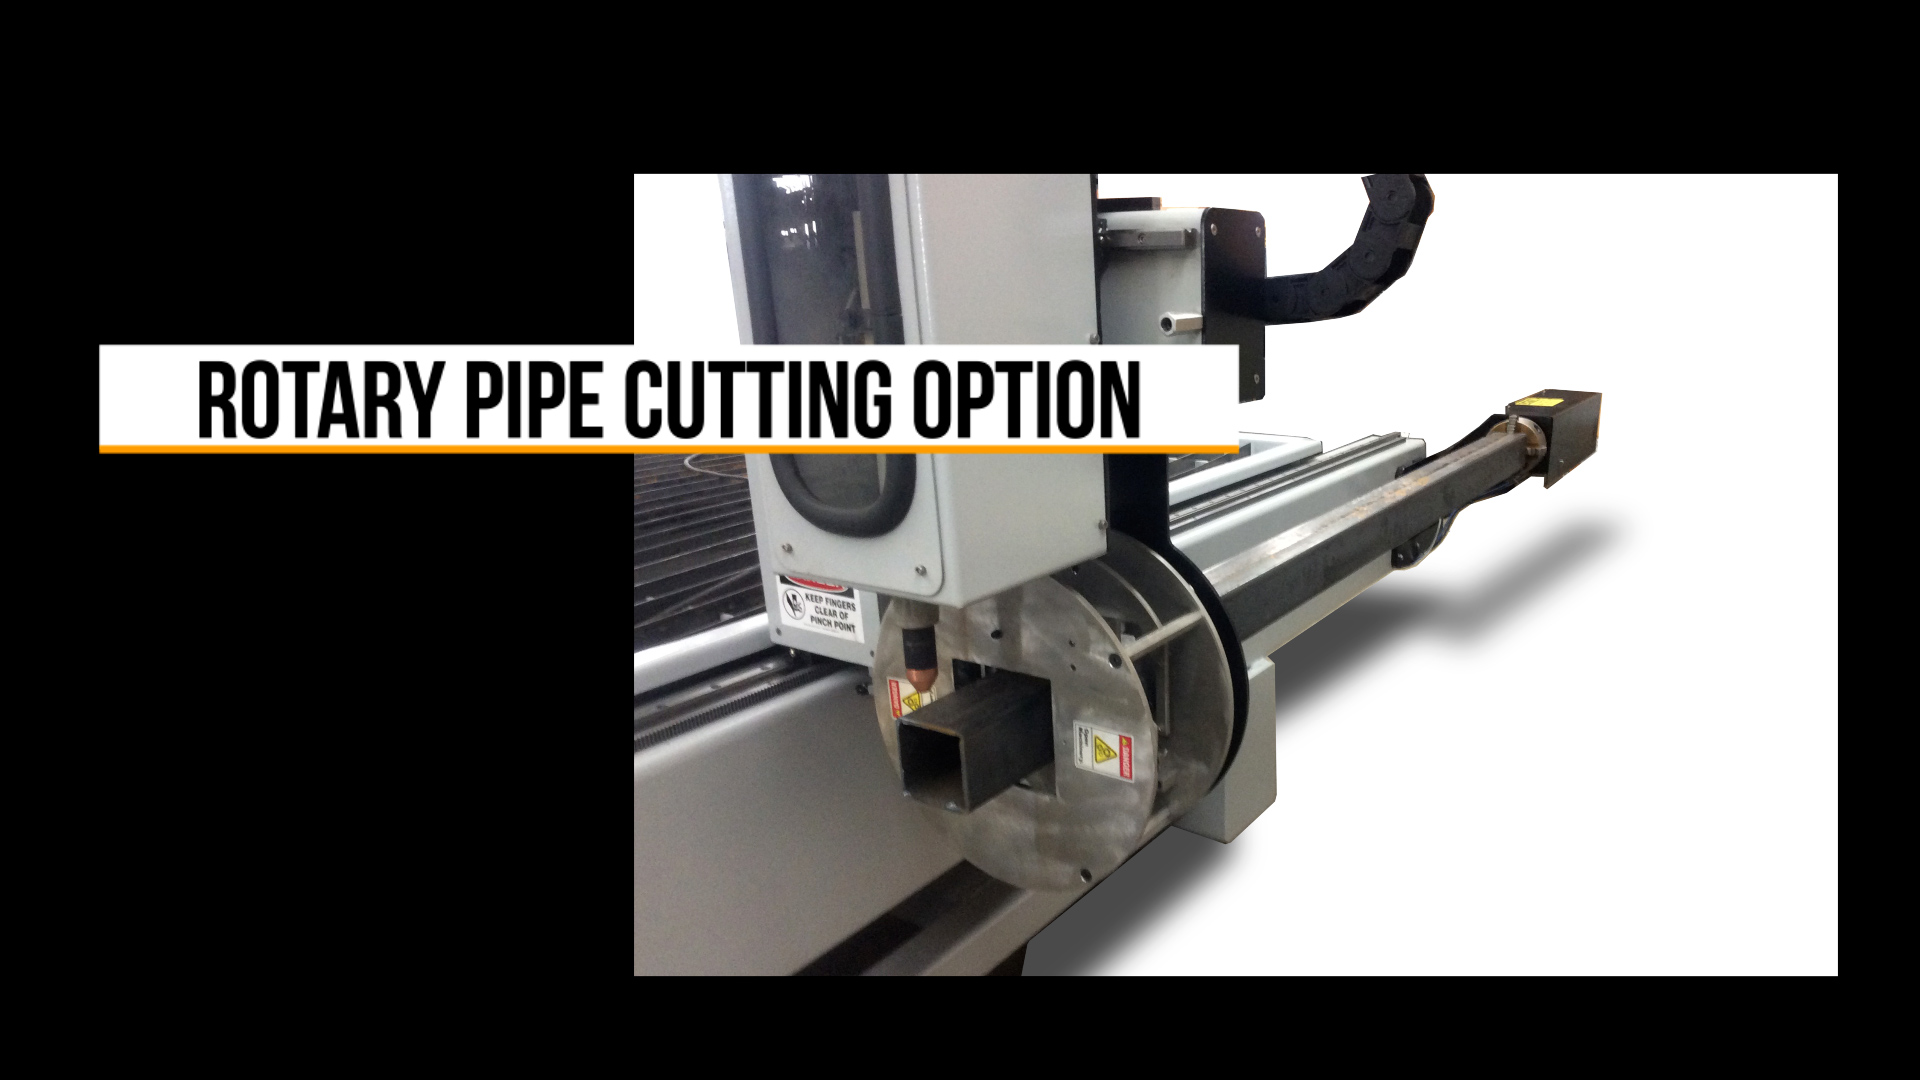 Rotary Pipe Cutter Attachment - Video Cover